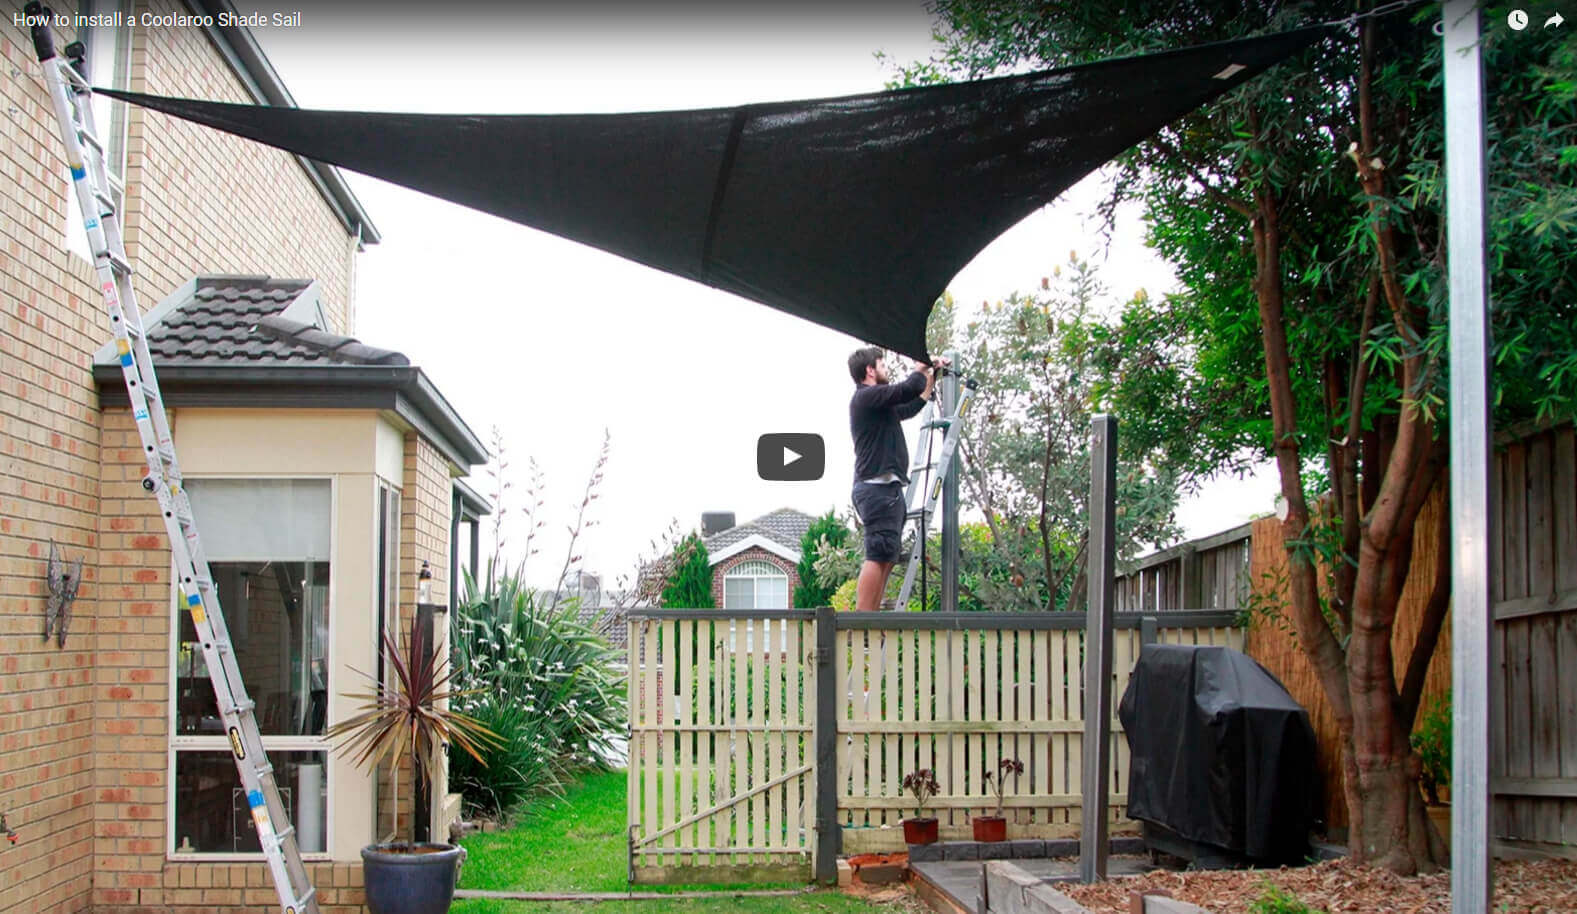 How to install a Coolaroo Shade Sail